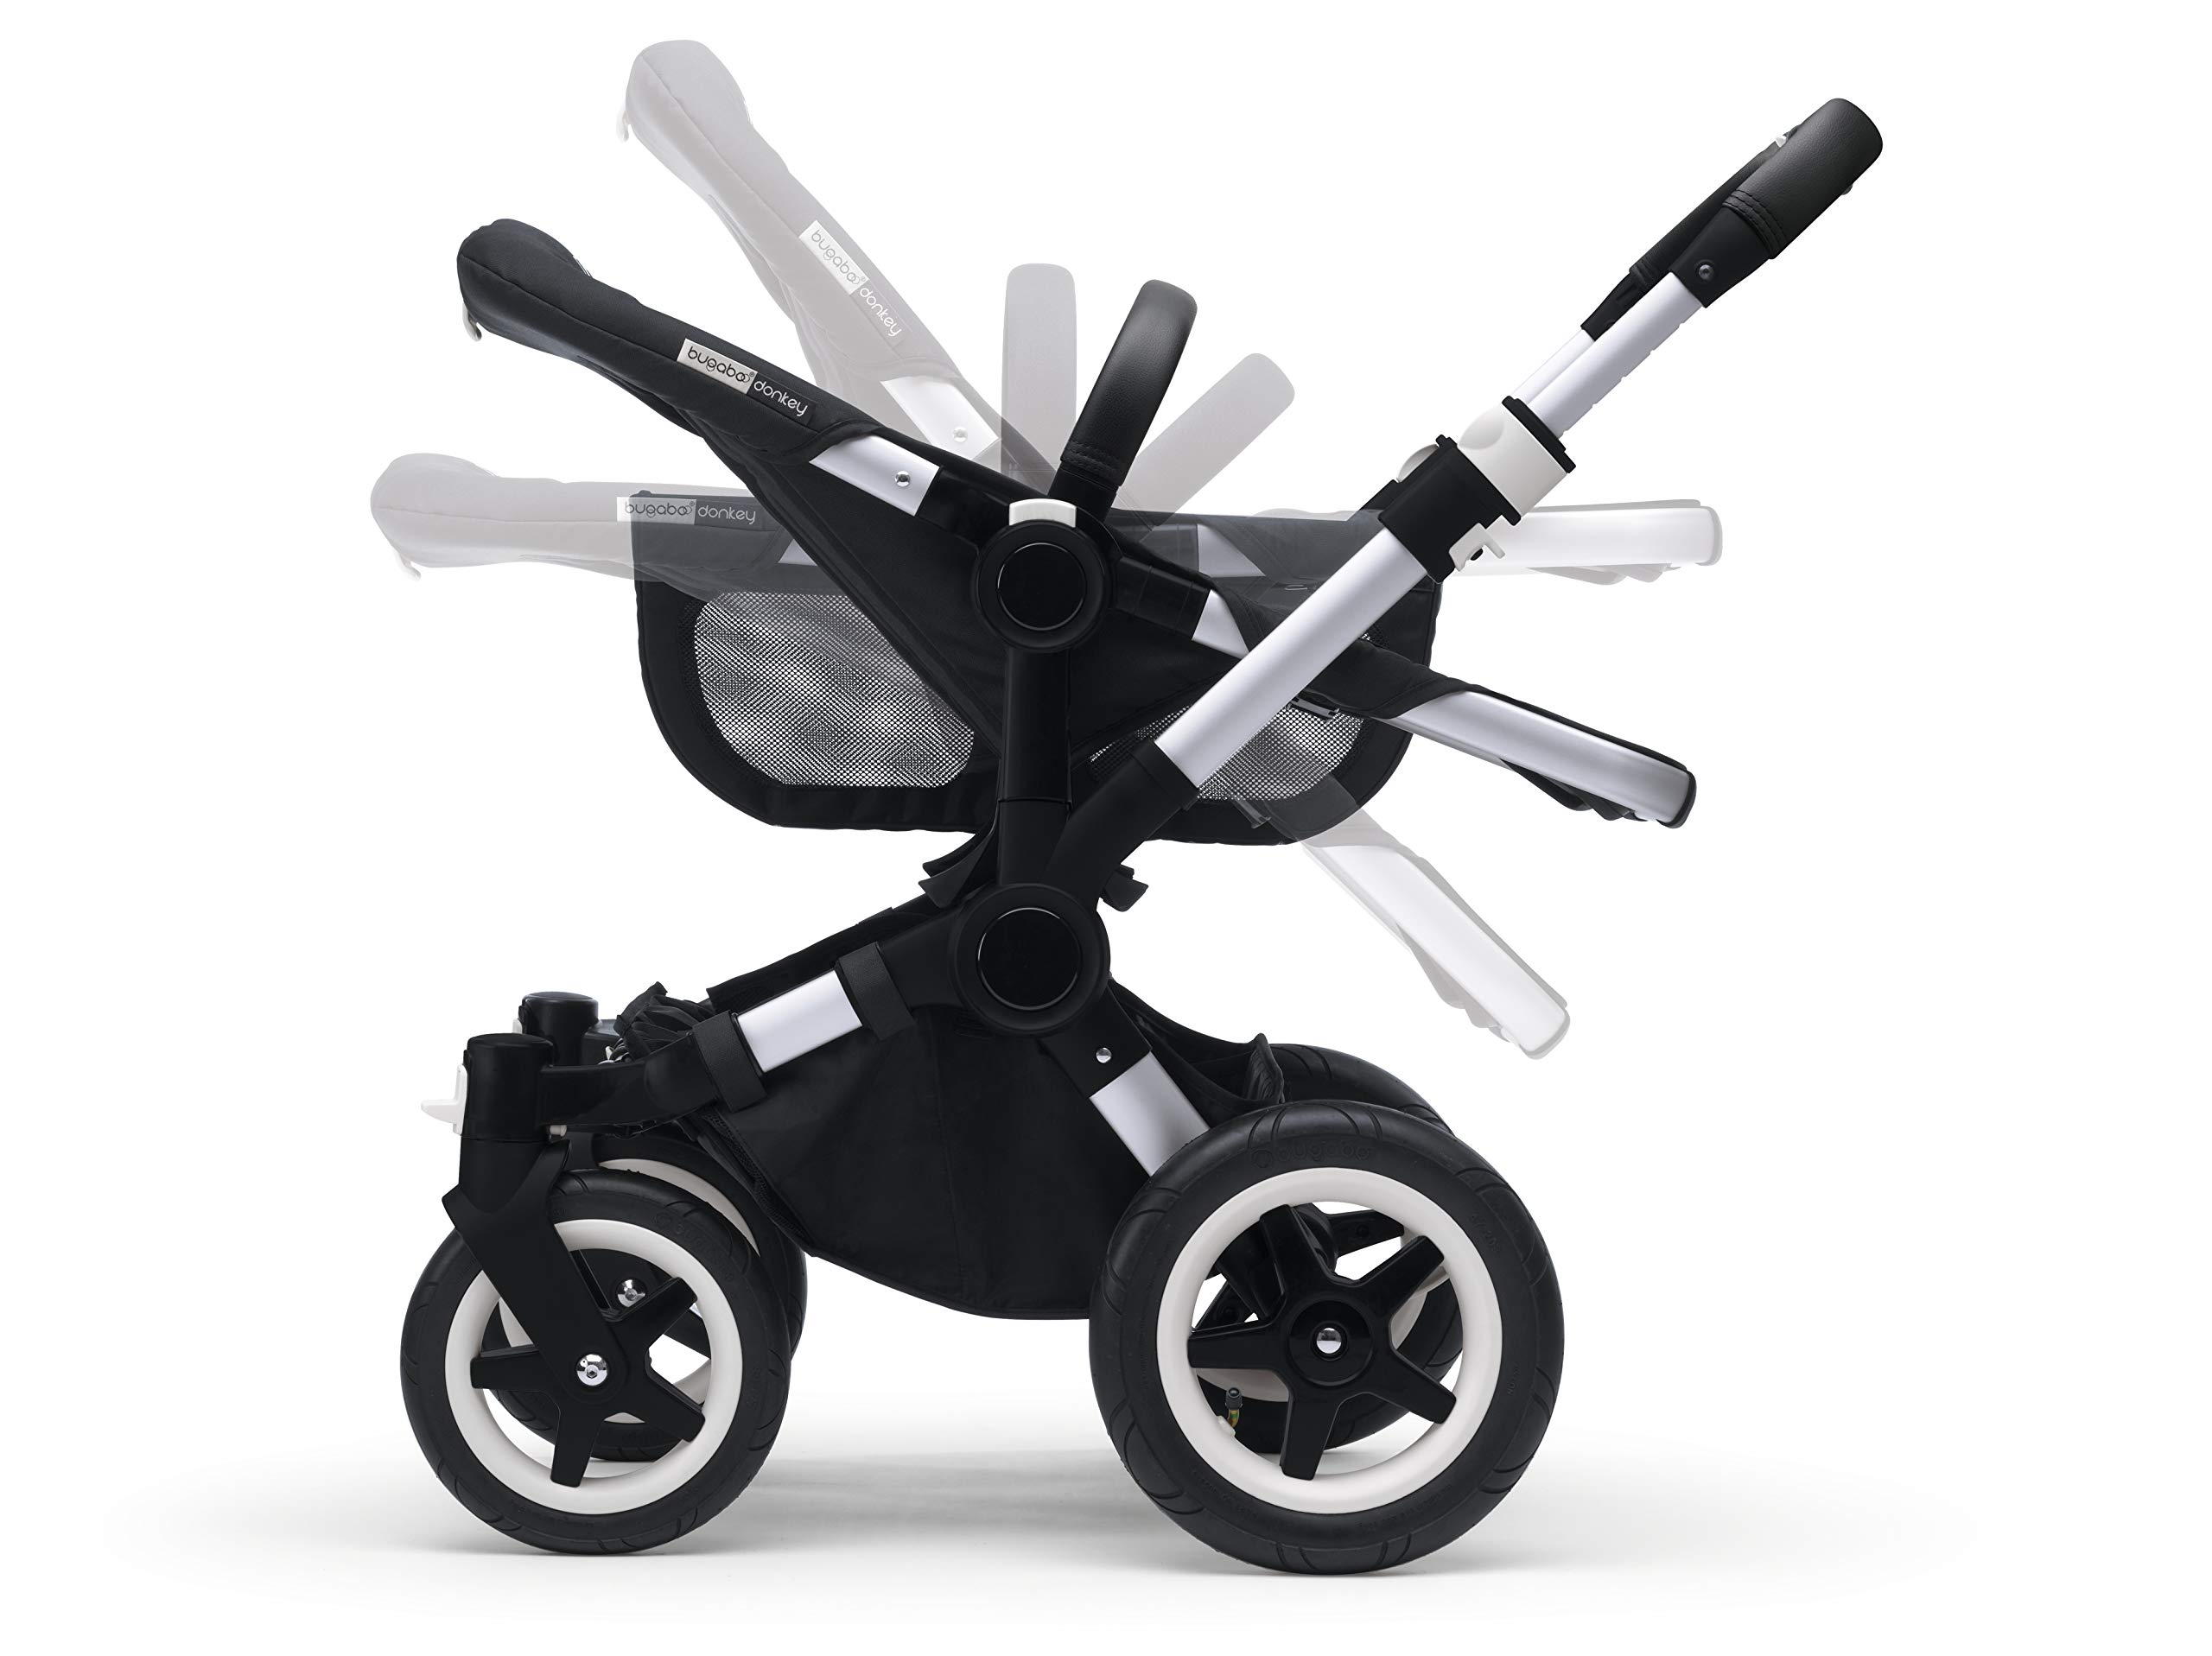 Bugaboo Donkey 2 Mono, 2 In 1 Pram and Pushchair, Extends Into Double Stroller, Black/Soft Pink Bugaboo The name donkey says it all; it's the bugaboo pushchair with the most storage space The bugaboo donkey2 mono can be easily extended to create even more space in the expandable side luggage basket & underseat basket Use extension sets to convert the bugaboo donkey2 mono into a duo or twin pushchair in just three clicks (extension sets sold separately) 6